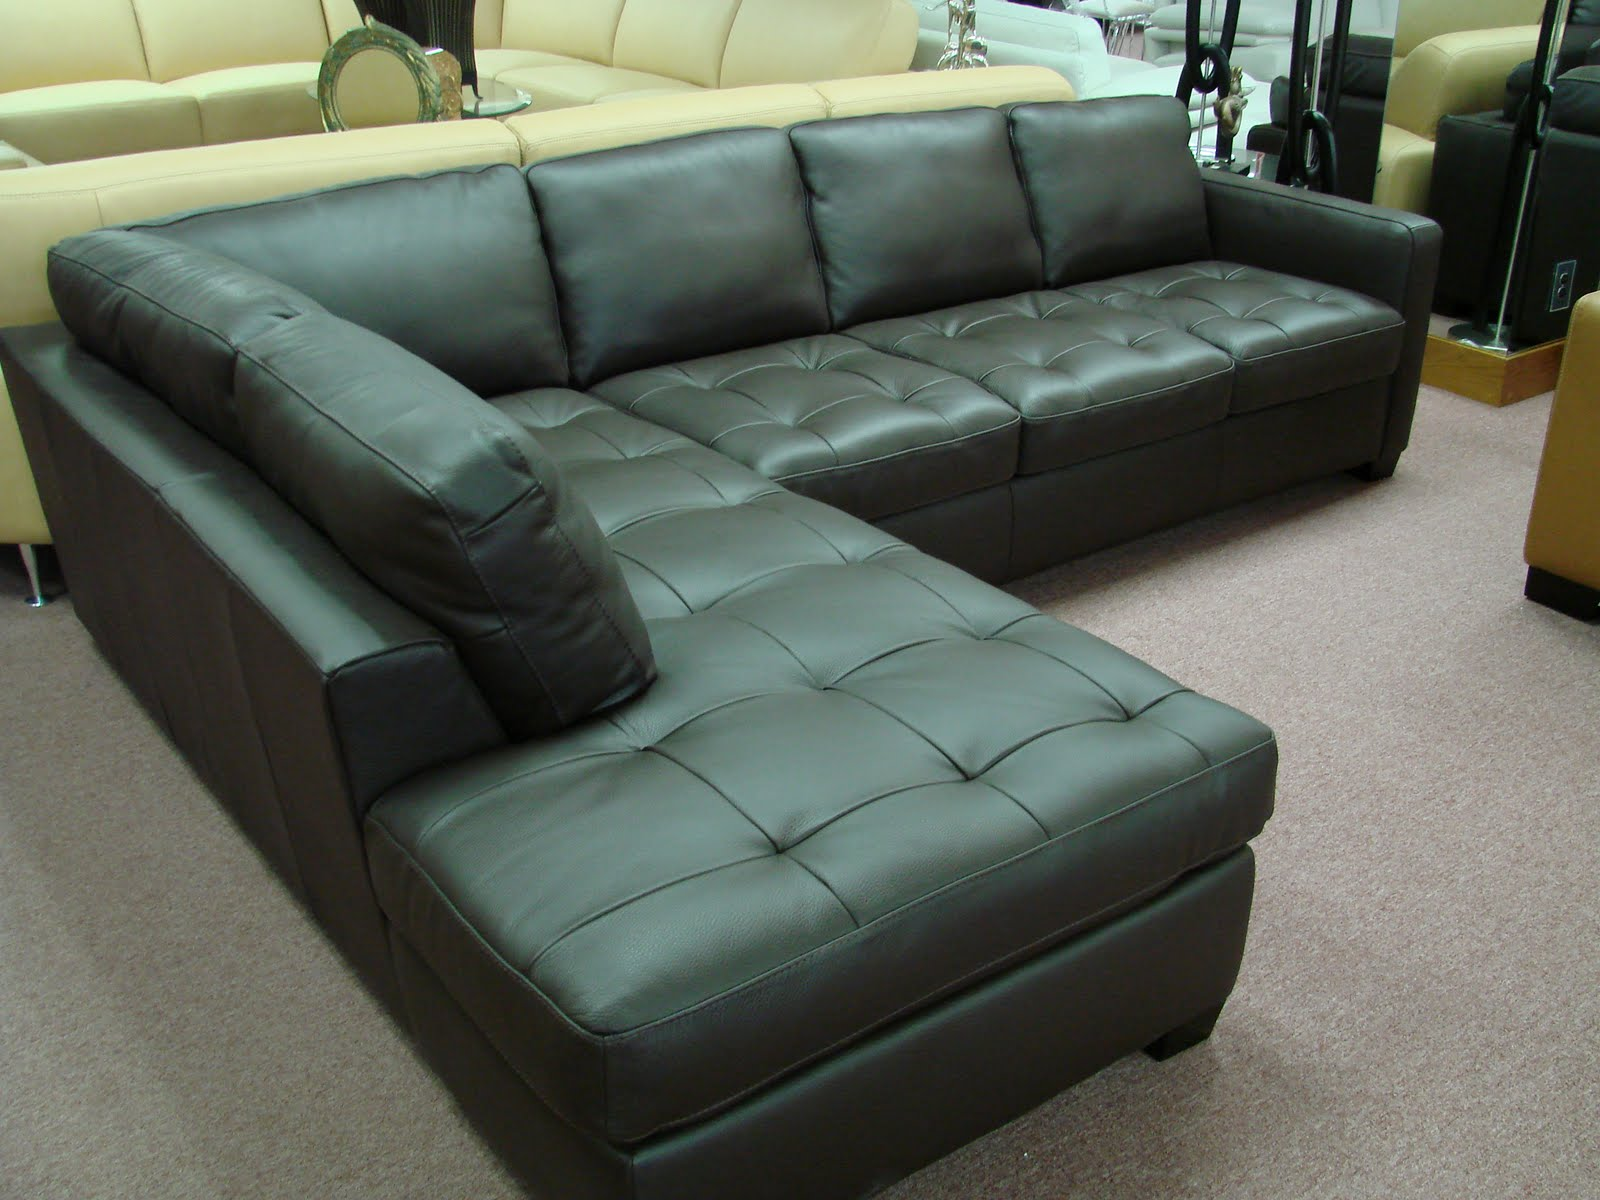 Comfy black leather sectional for elegant living room design with black leather sectional sofa